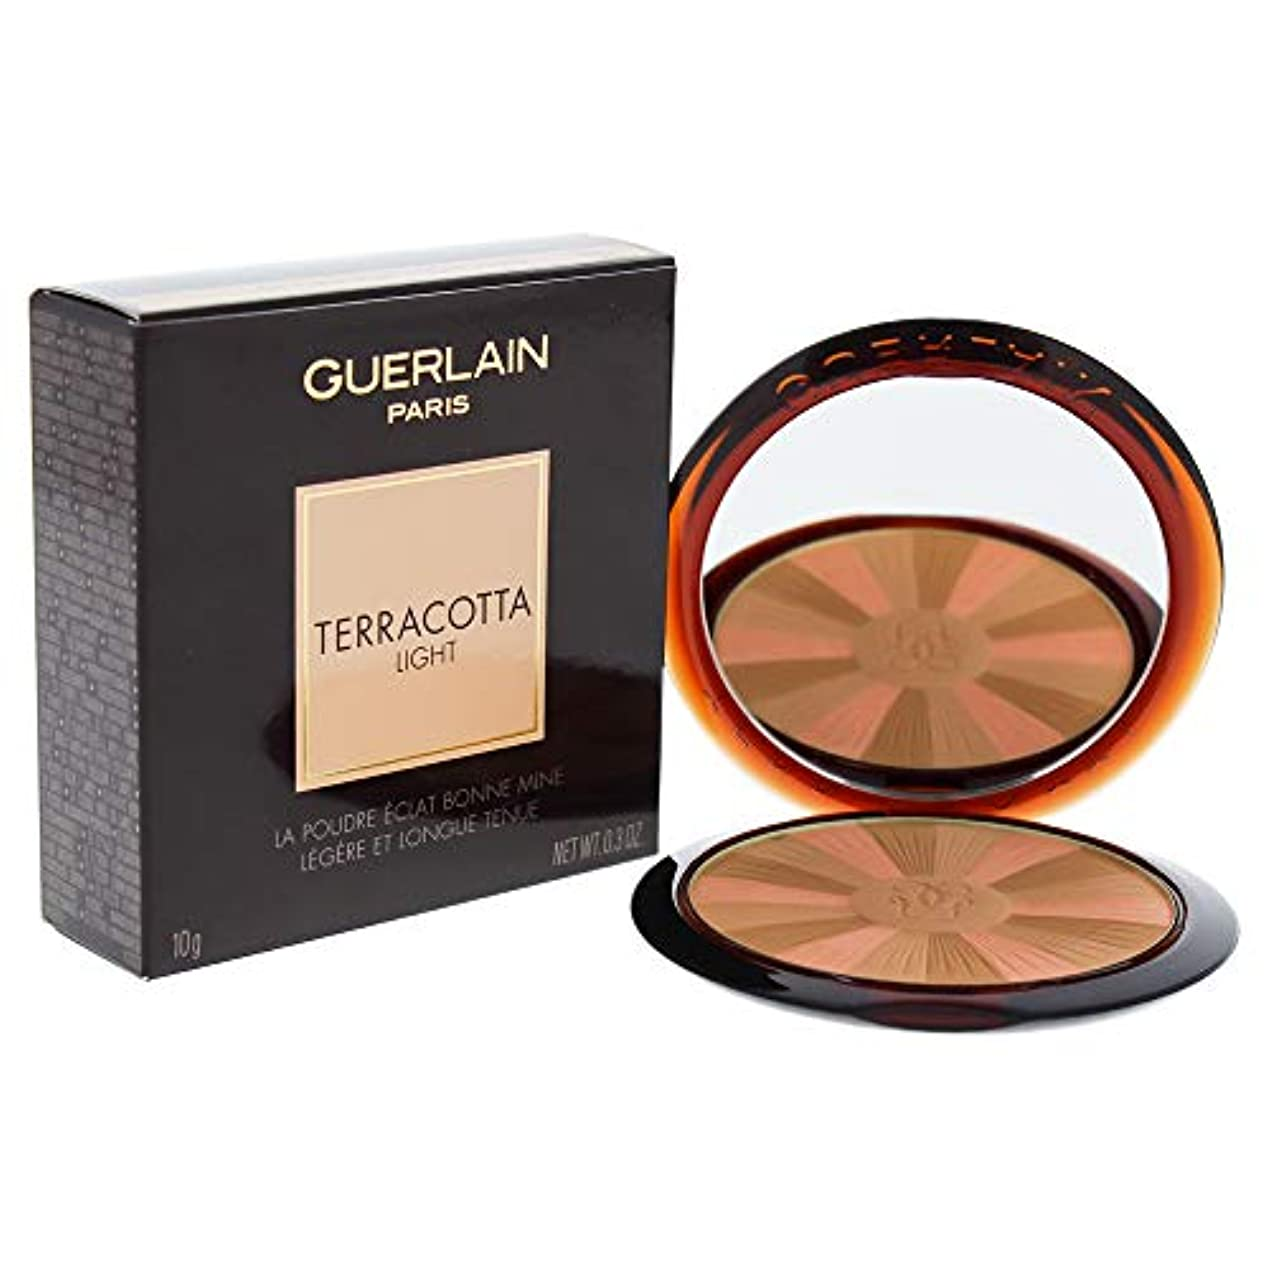 サワー技術的なアリスゲラン Terracotta Light The Sun Kissed Healthy Glow Powder - # 01 Light Warm 10g/0.3oz並行輸入品